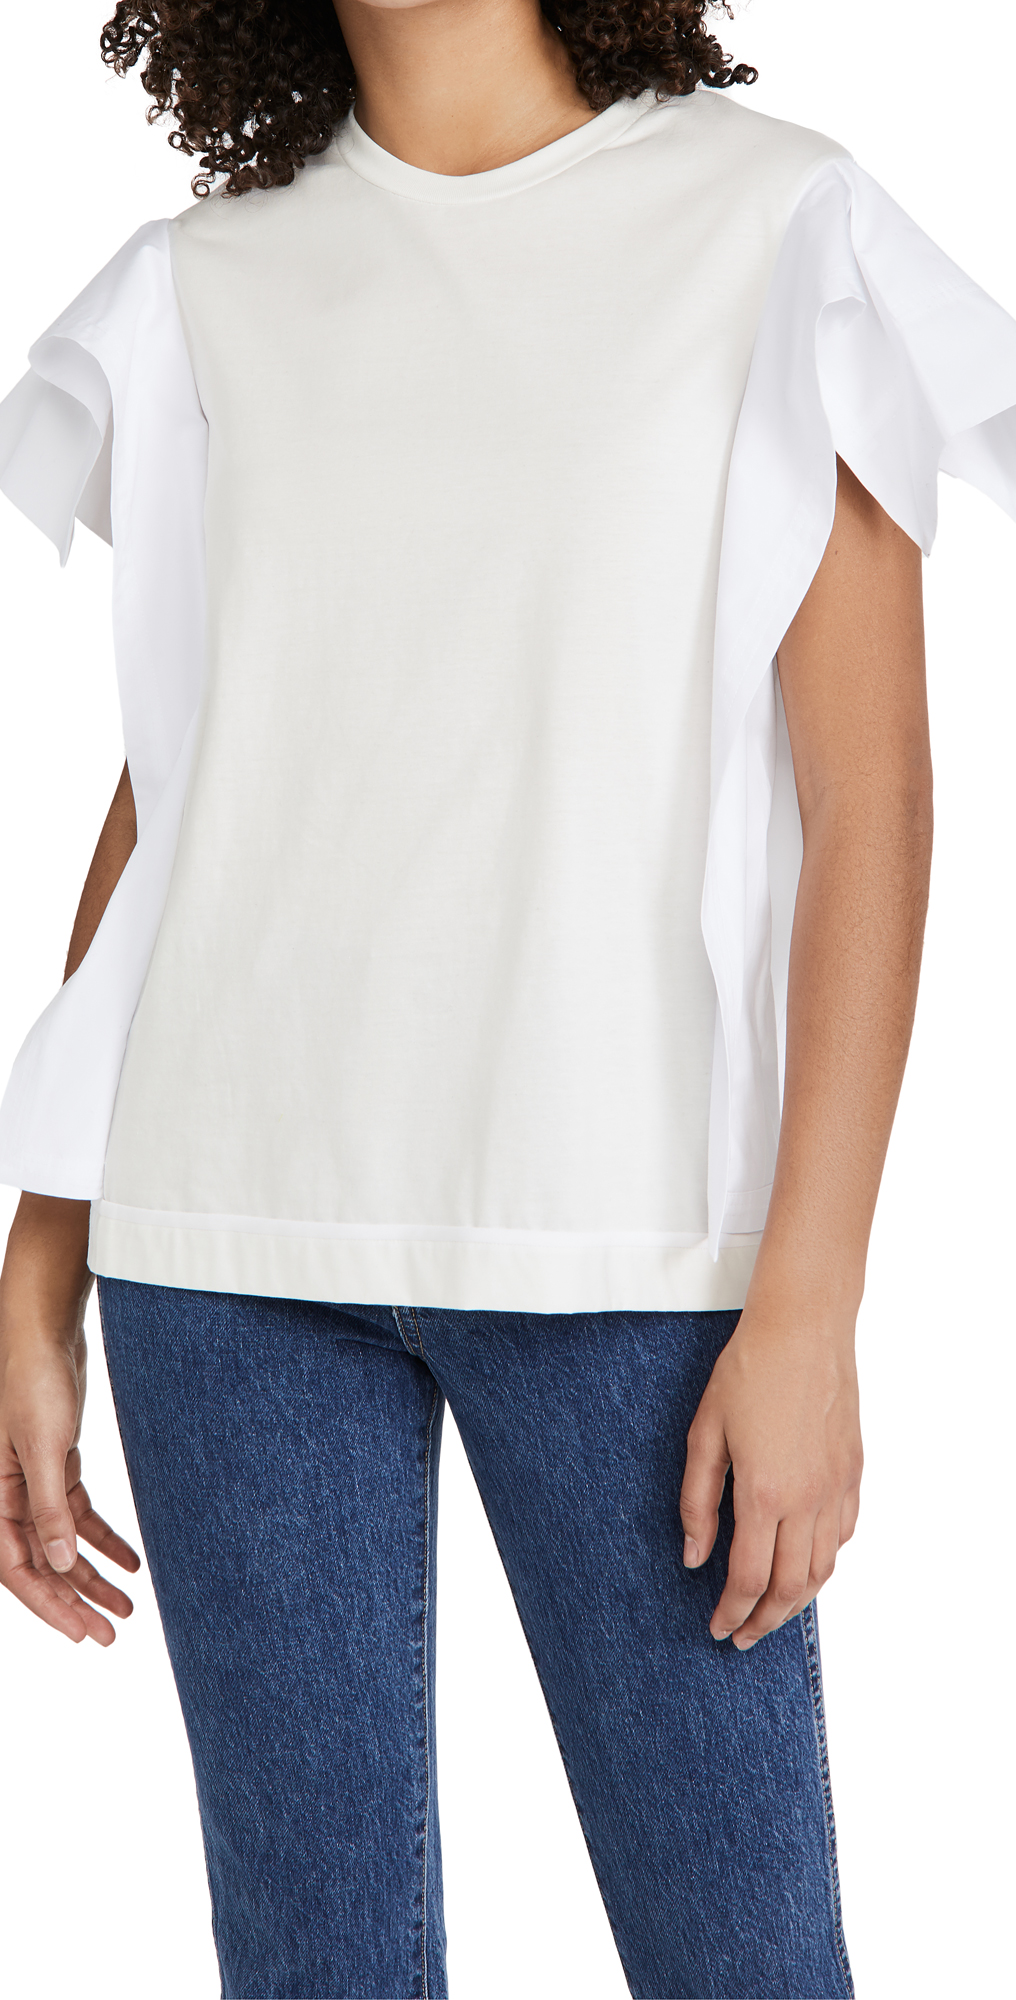 3.1 Phillip Lim Combo T-Shirt with Ruffle Sleeves